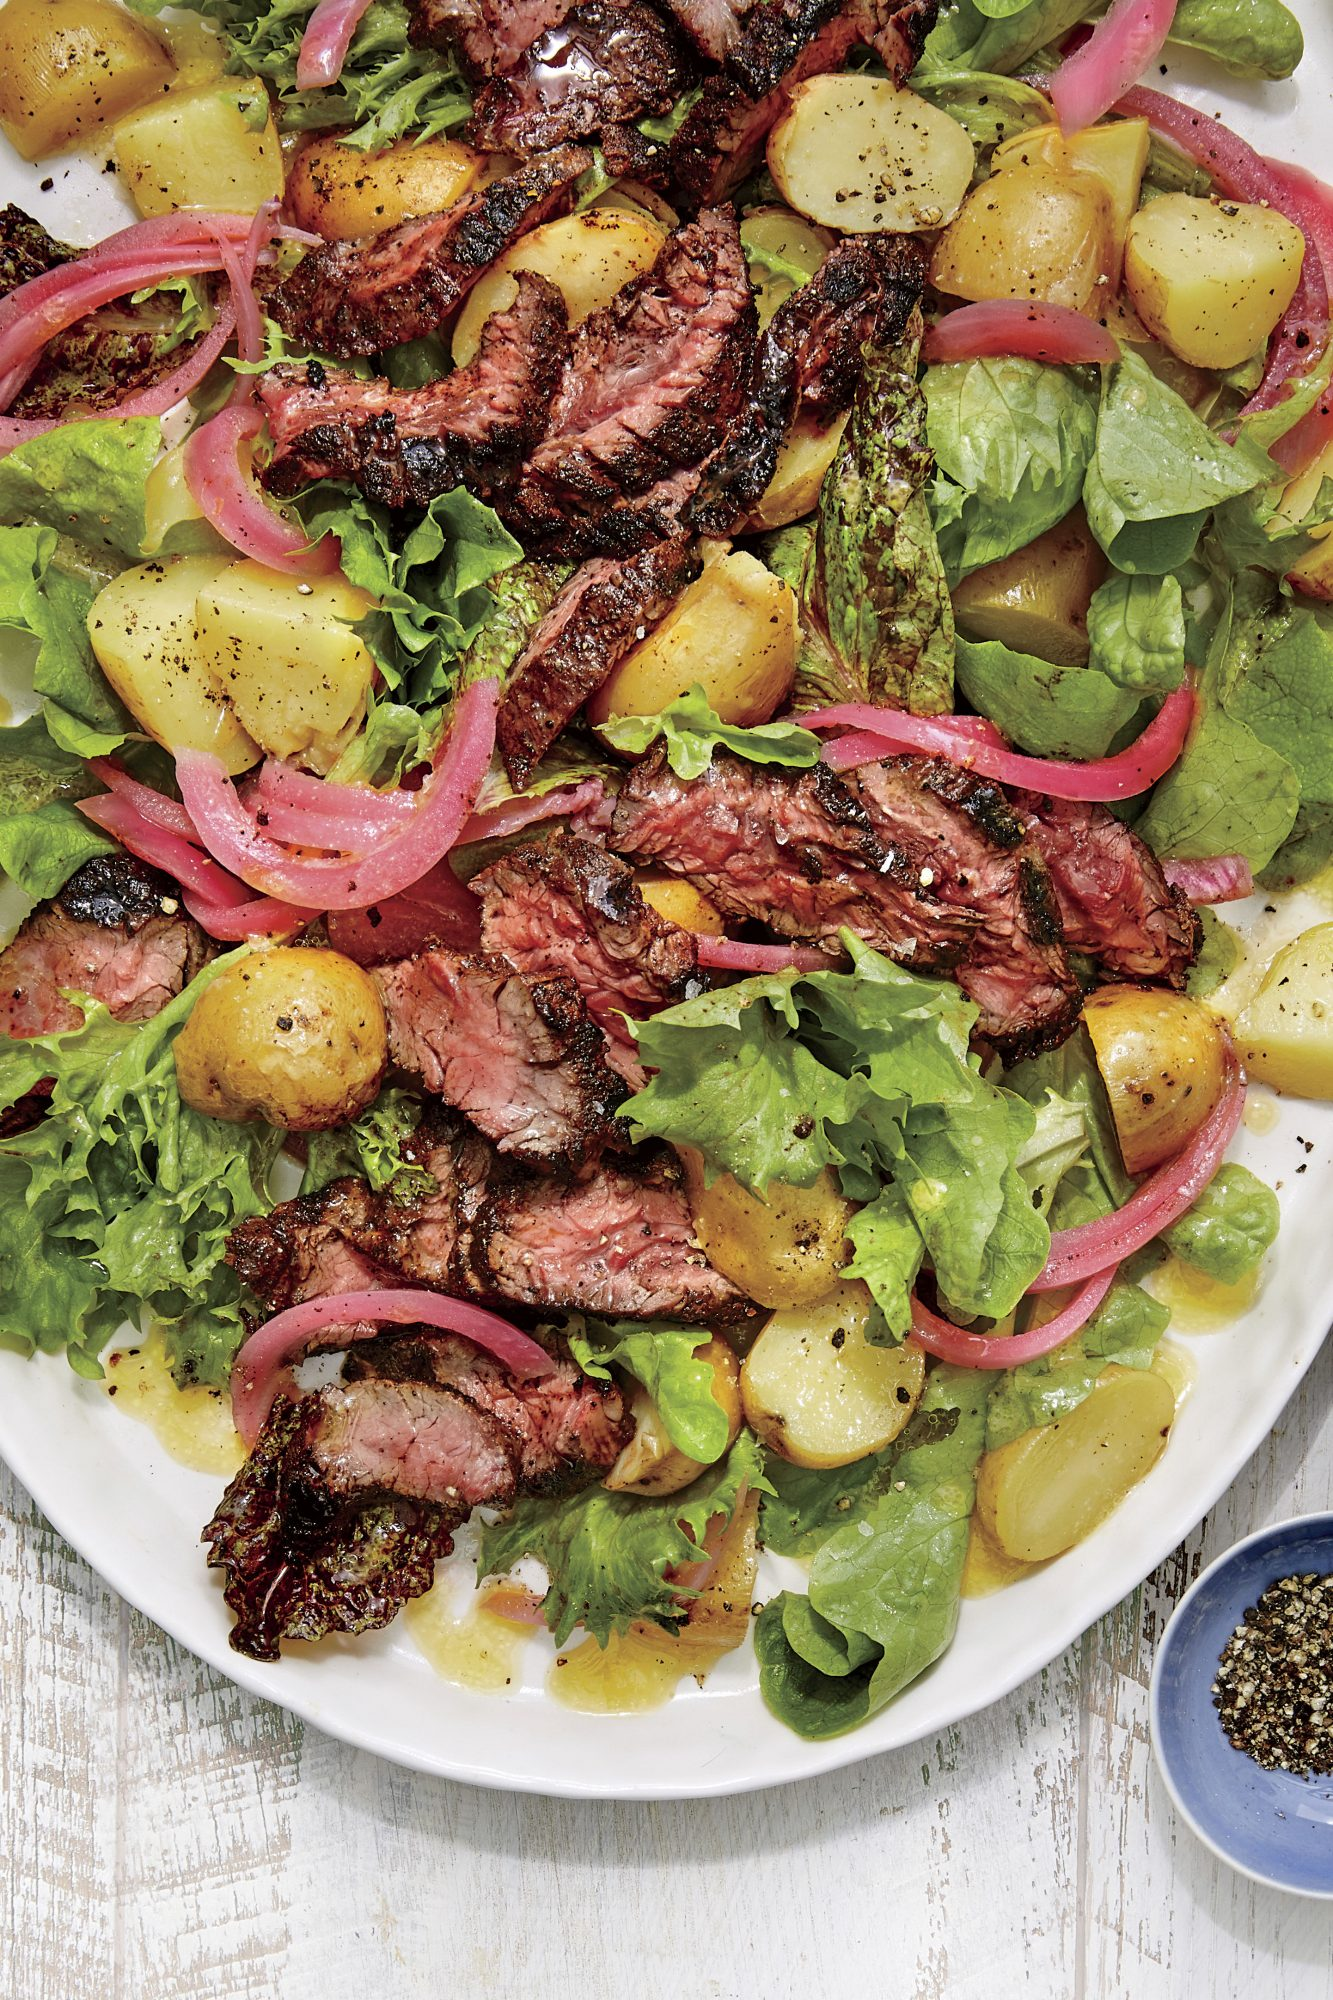 sl-Grilled Steak Salad with Potatoes and Pickled Red Onion